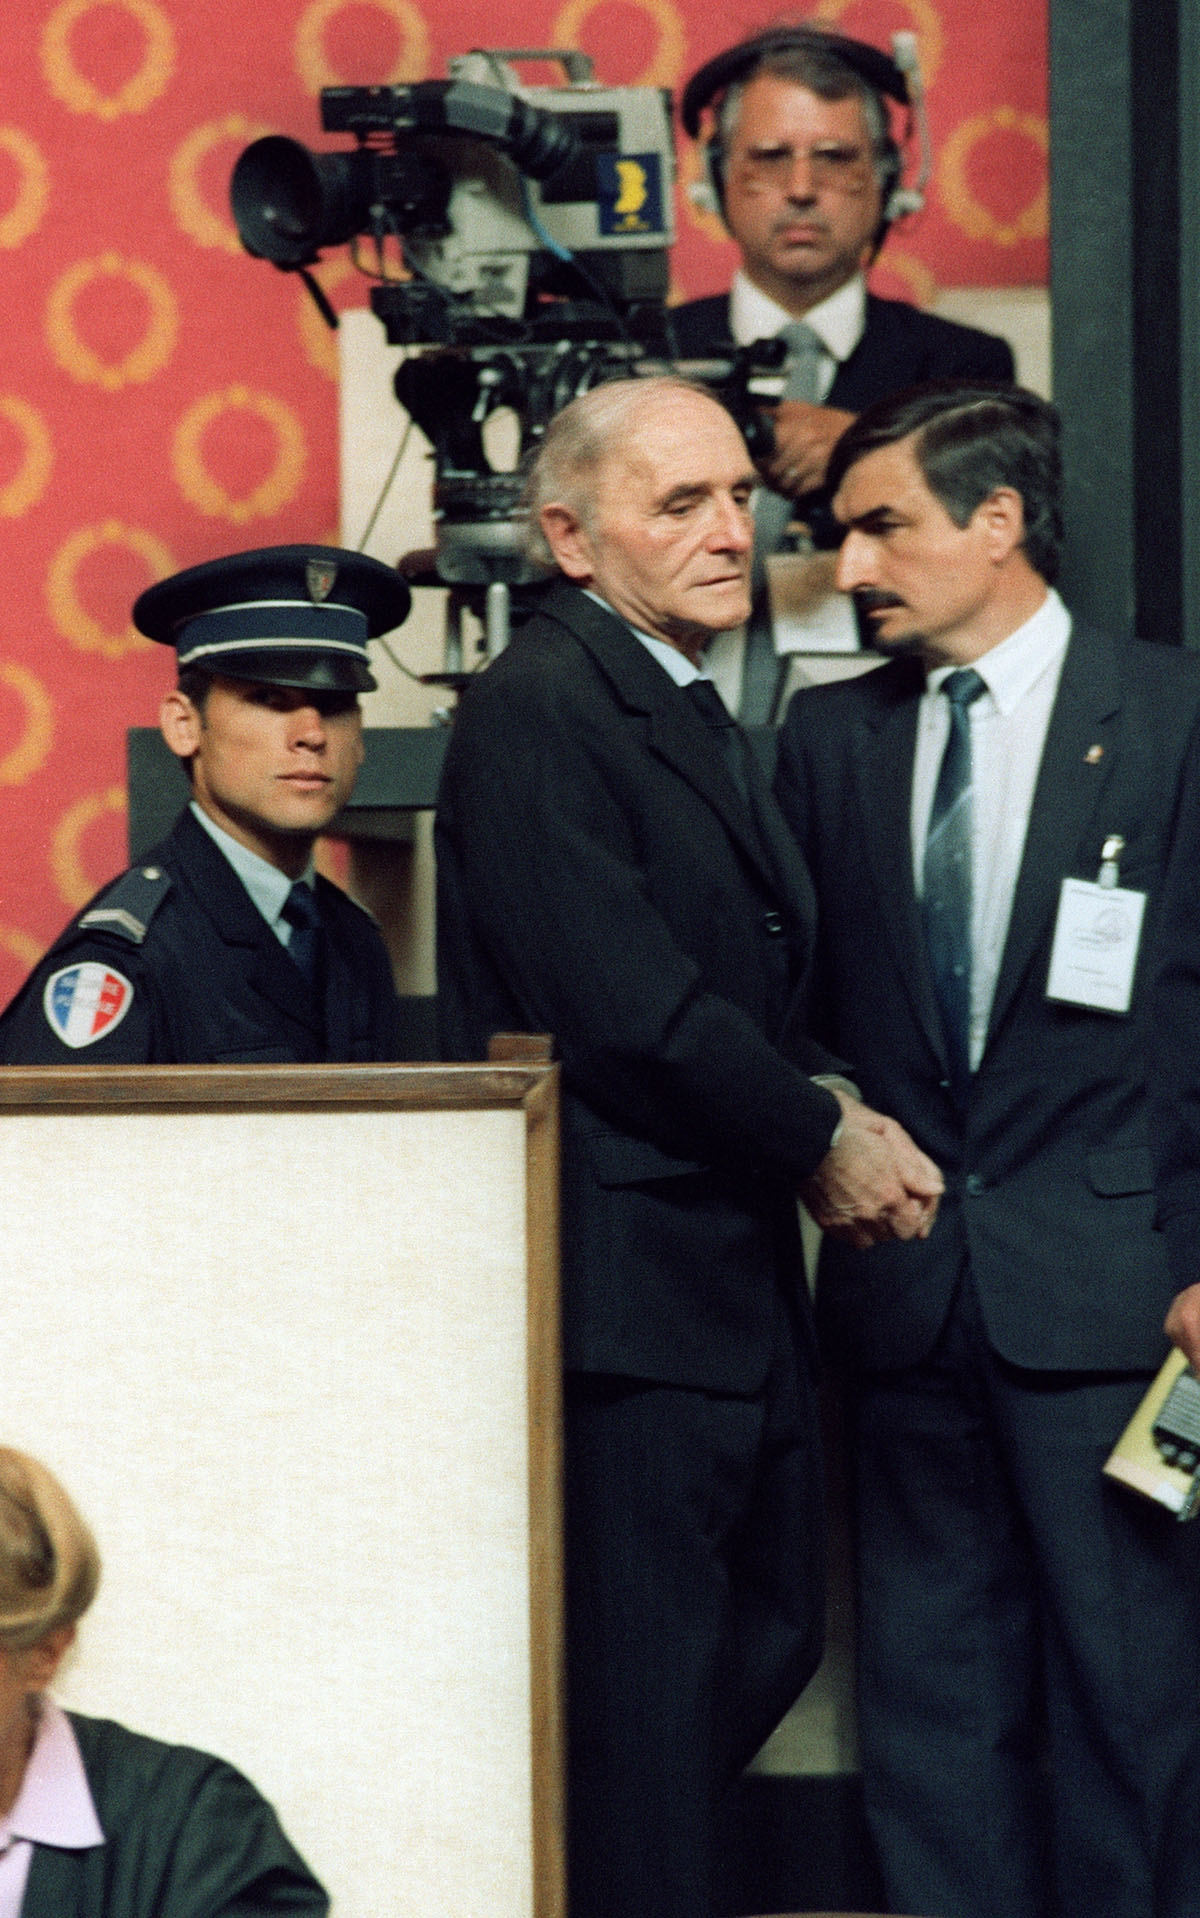 Former SS officer Klaus Barbie, the Butcher of Lyons, in handcuffs, arrives at the courthouse, in Lyons, 11 May 1987 o